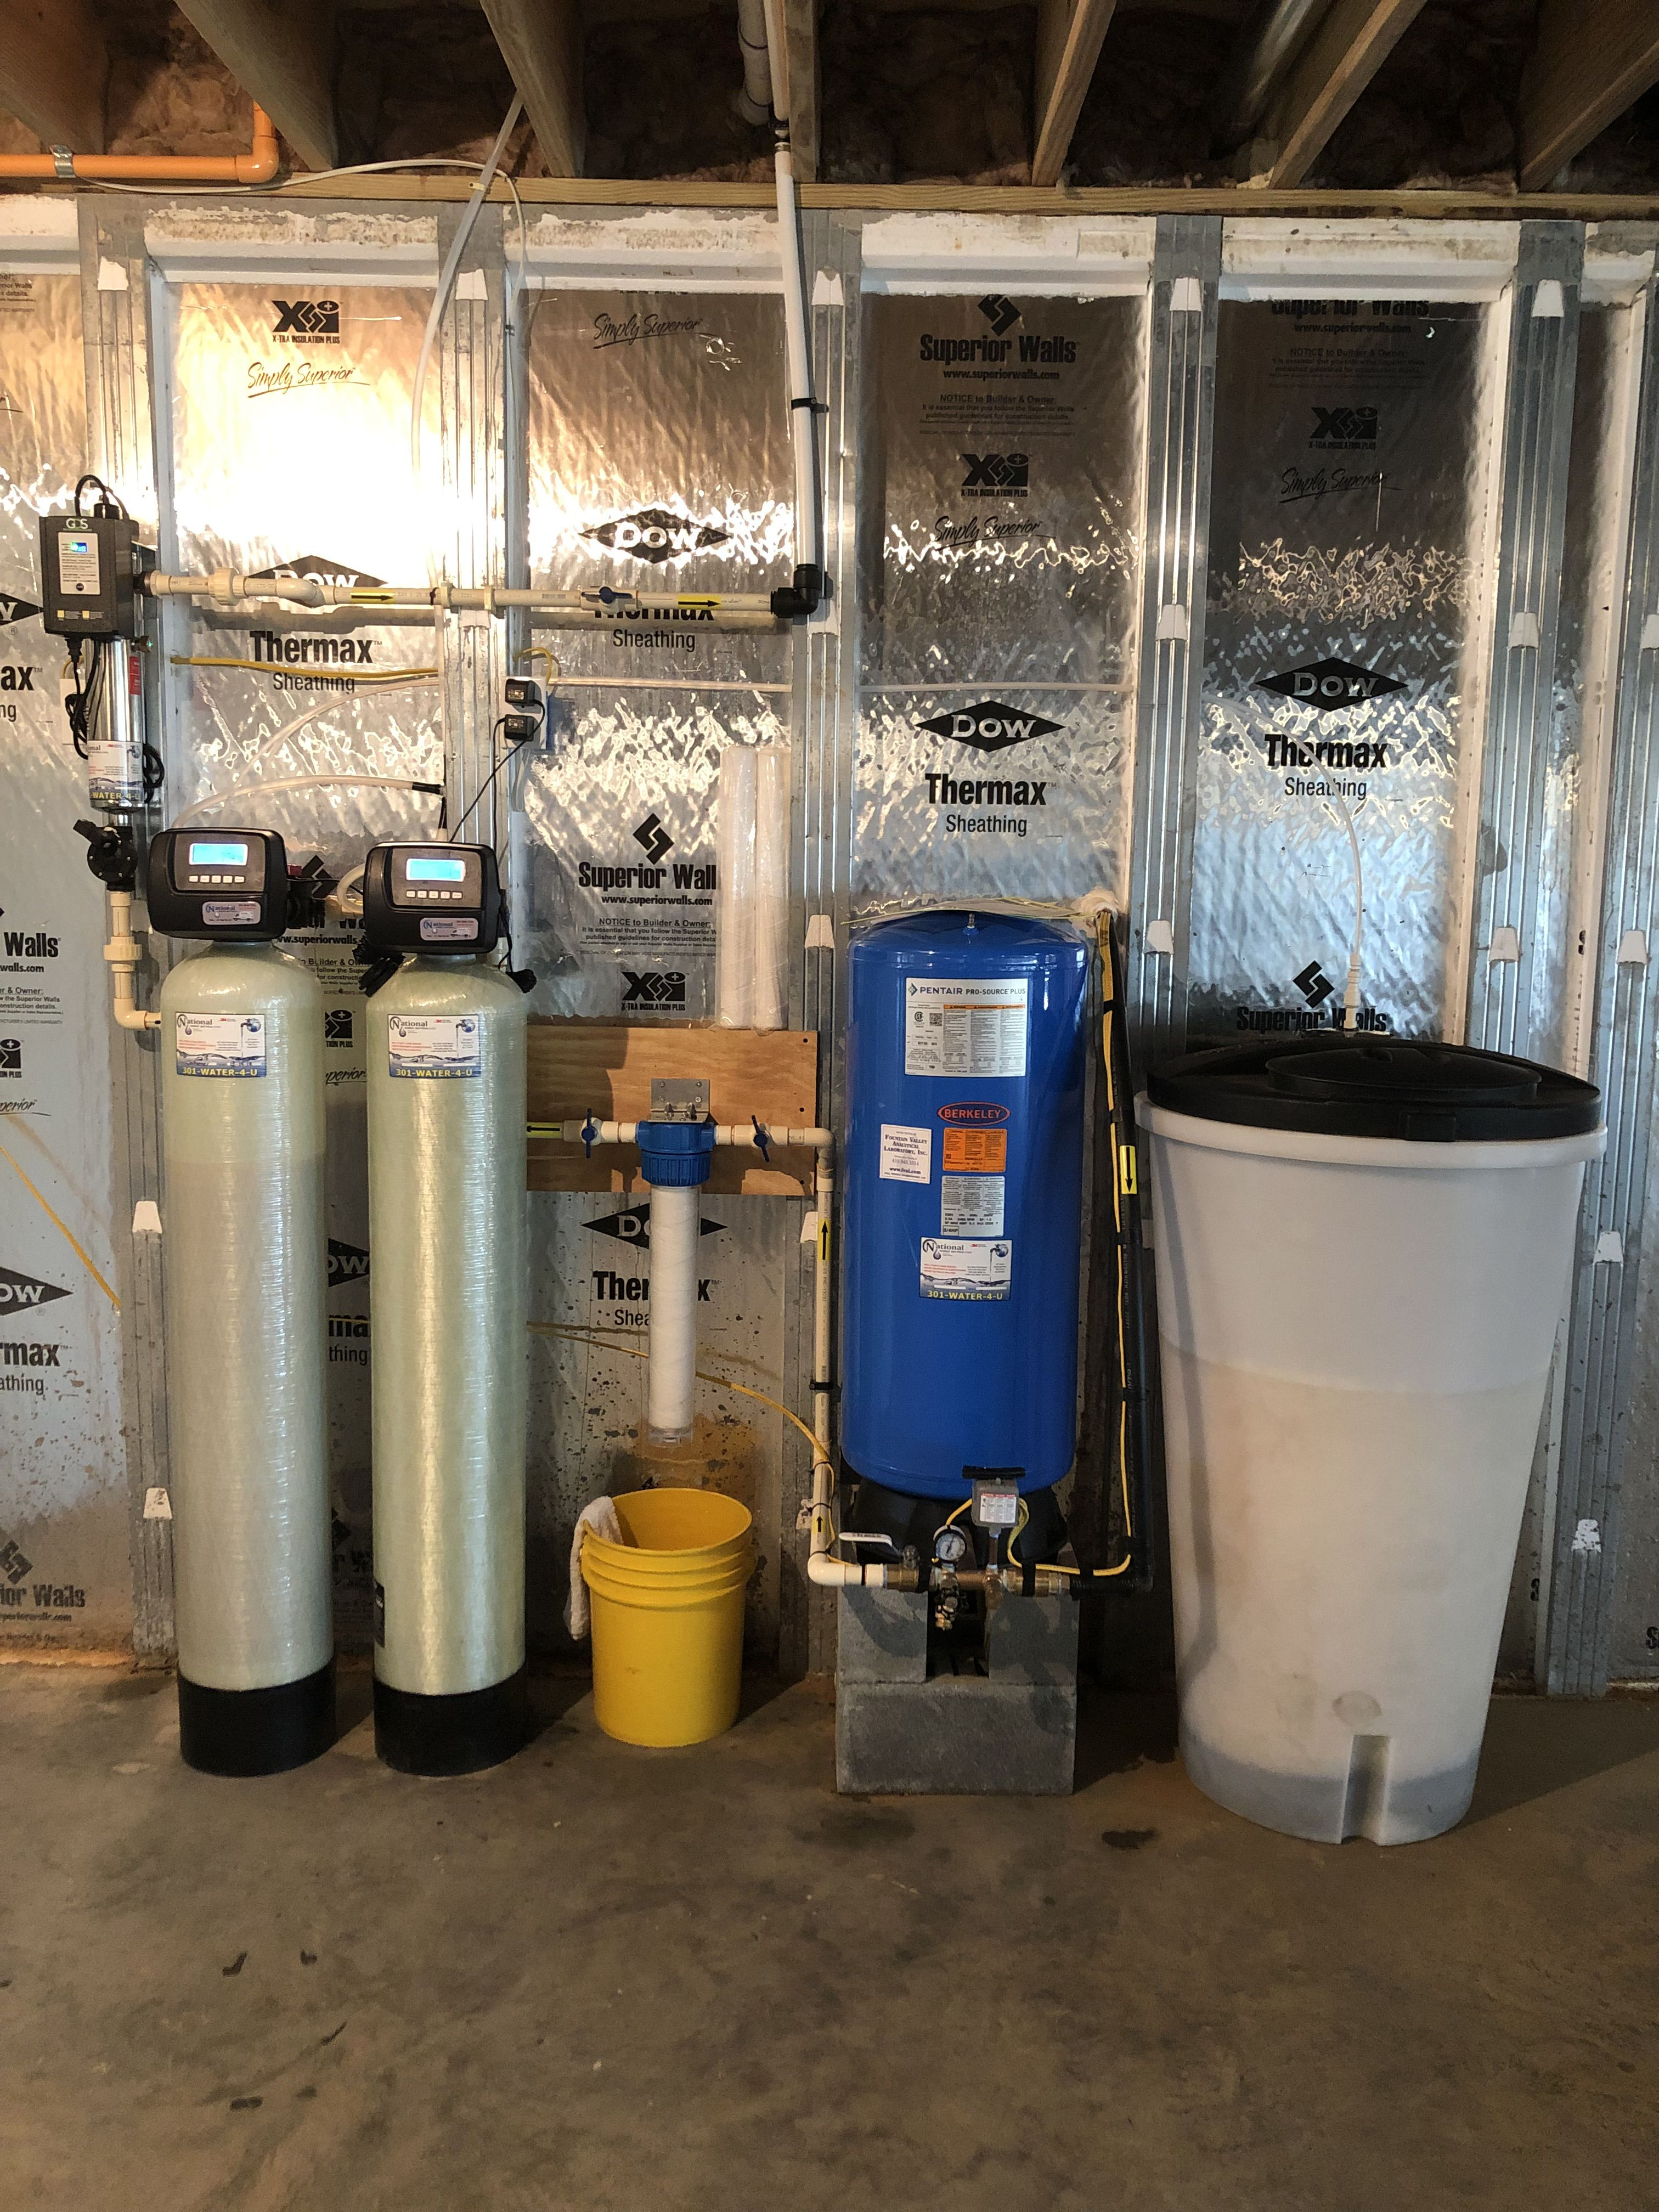 Install Of 2 Water Softeners 20 In Sediment Filter A Ultraviolet Light For Bacteria Disinfection Water Softener Water Treatment Water Quality